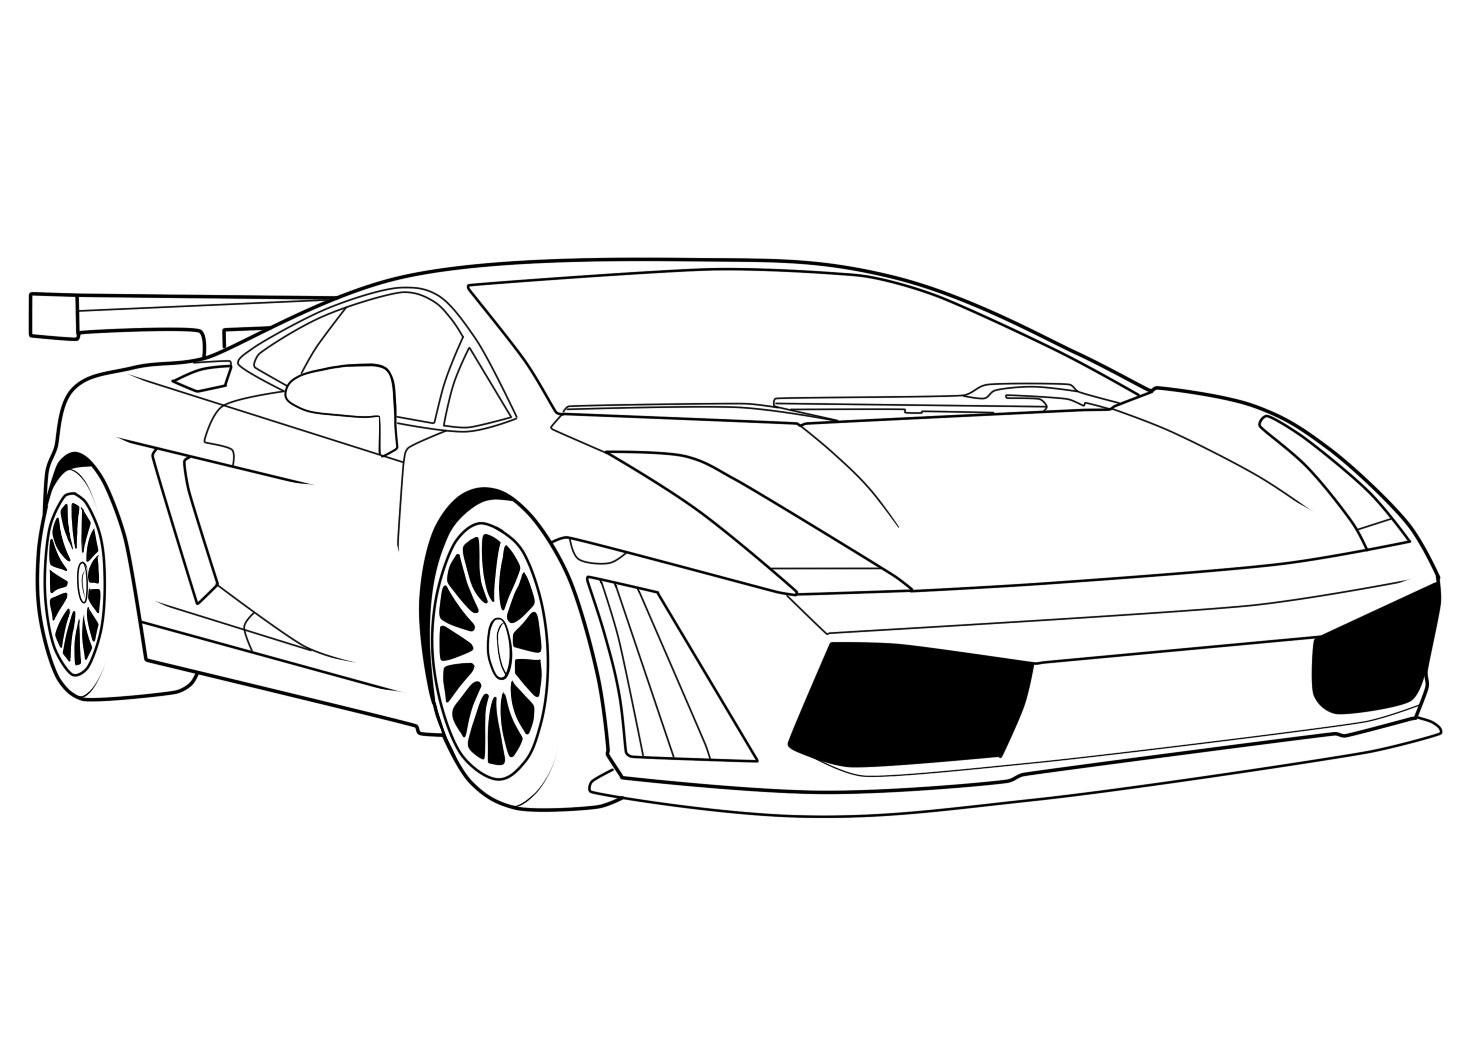 Car Coloring Pages Lamborghini Car Coloring Pages Ideas For Kid And Teenager Car Drawings Cars Coloring Pages Lamborghini Cars